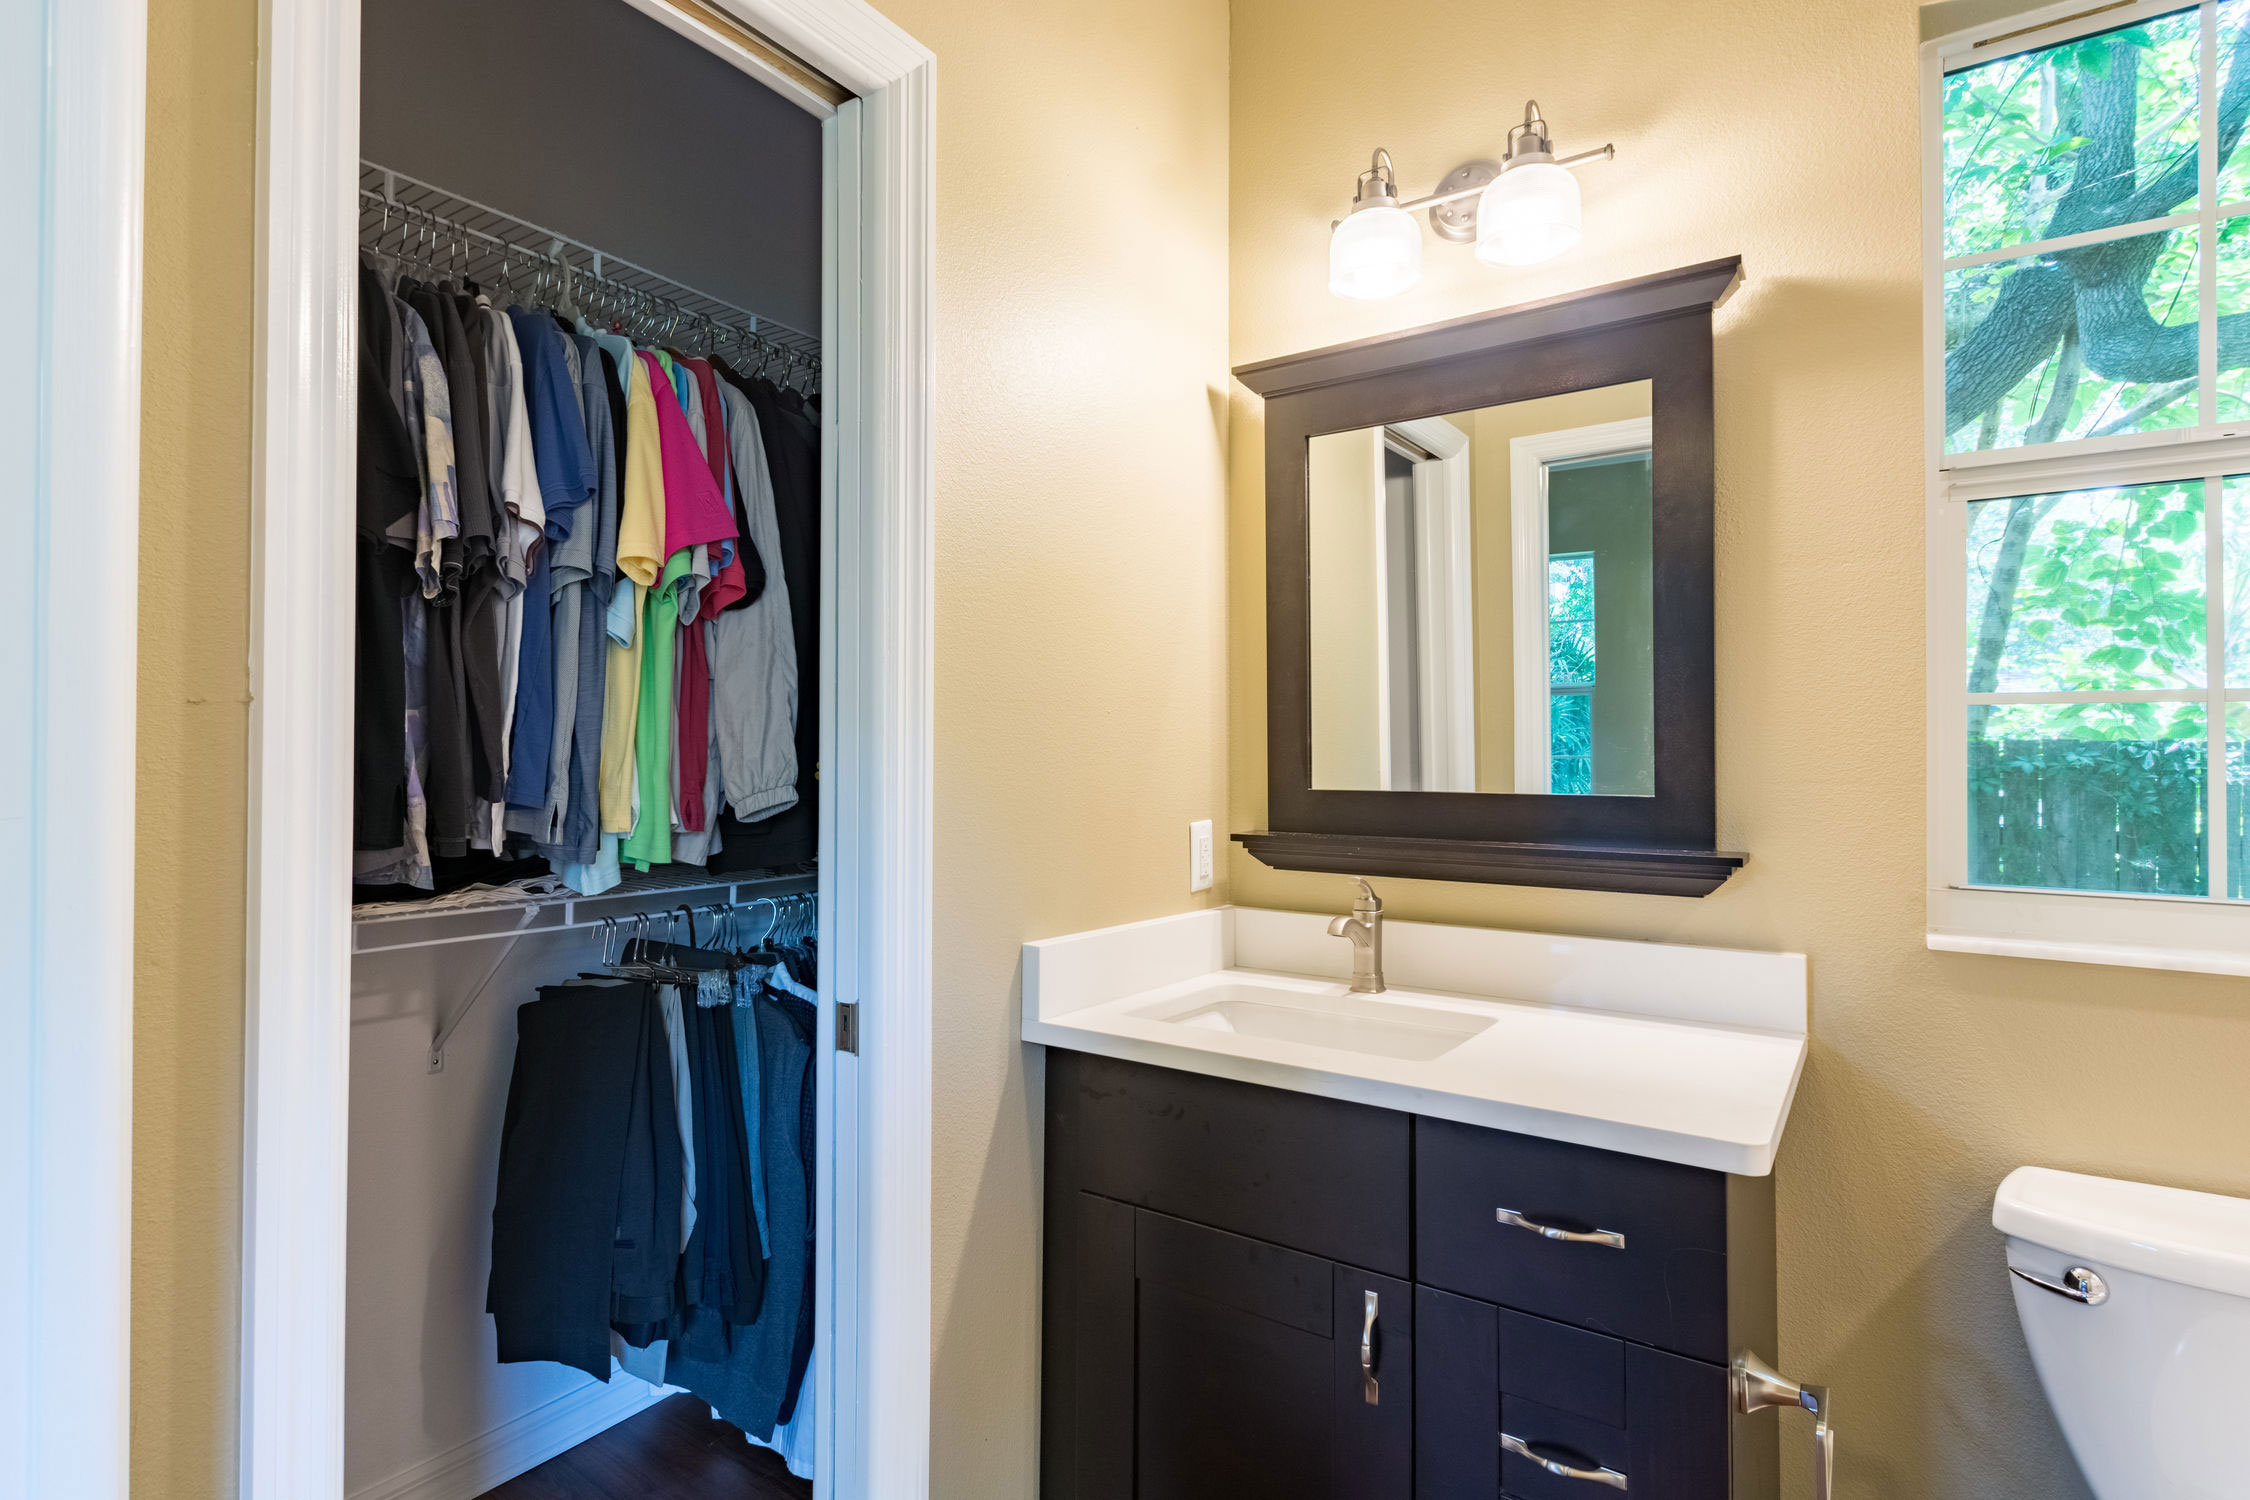 10-bathroom-and--closet.jpg